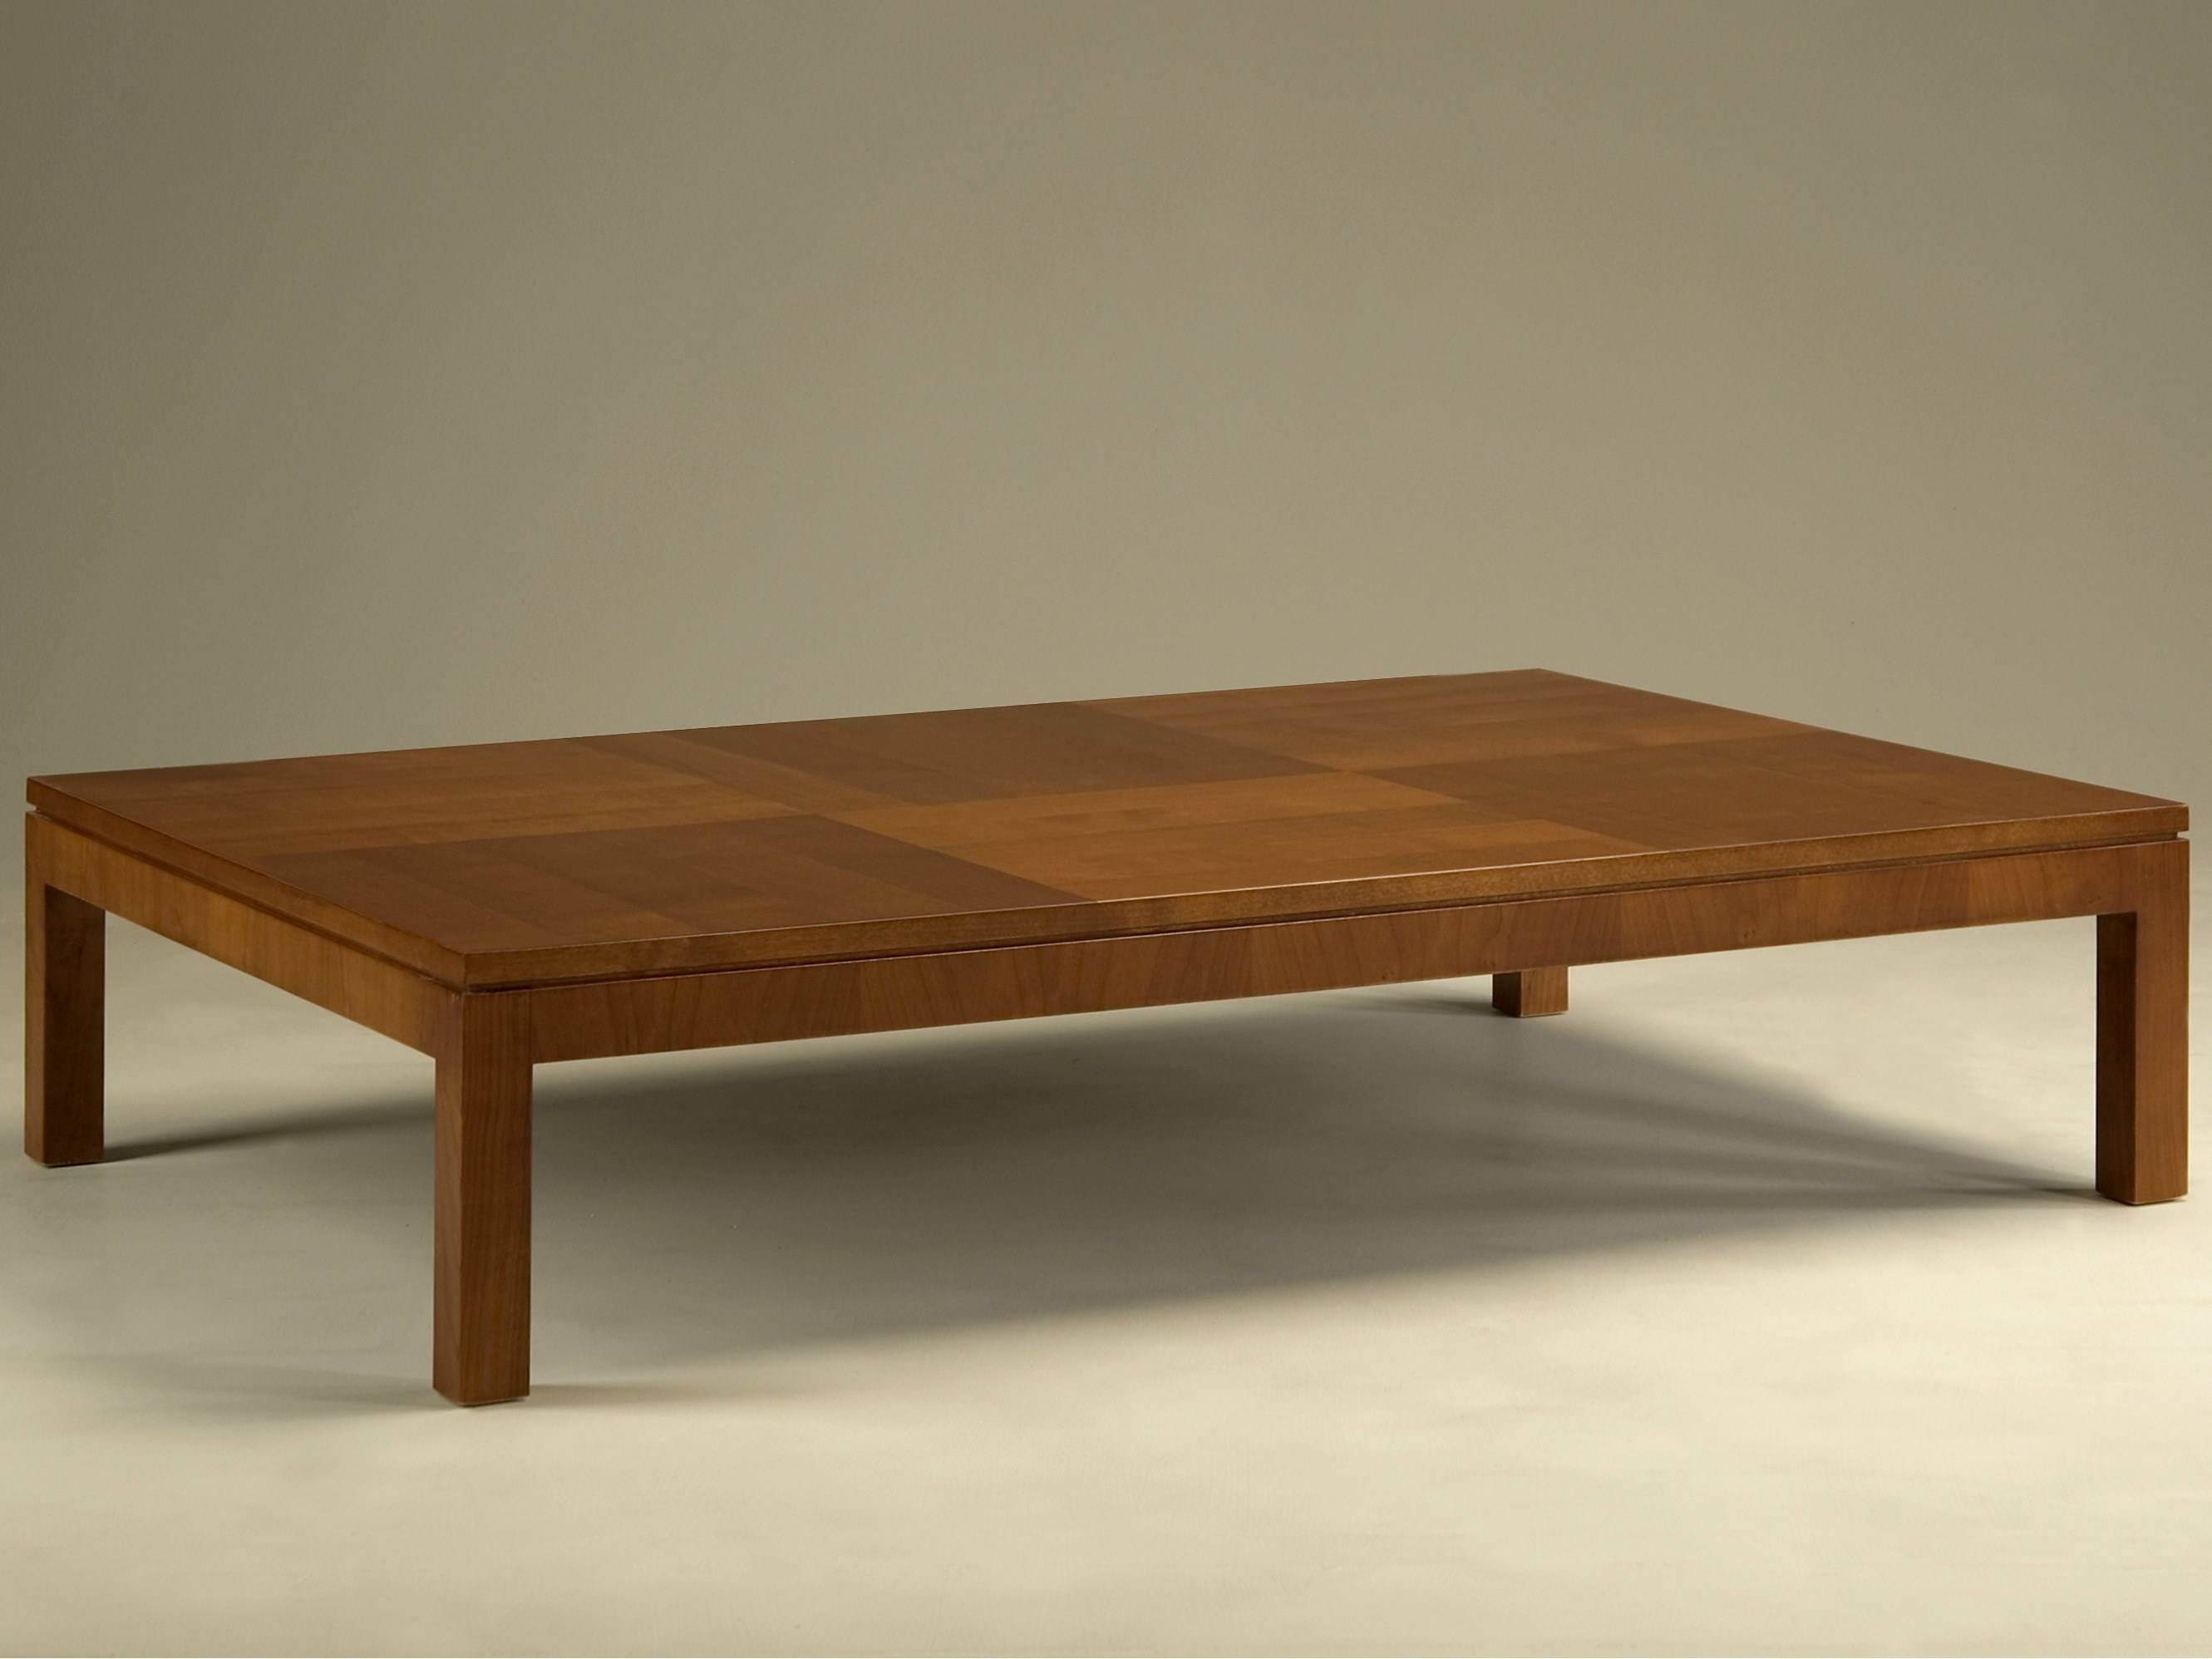 Amazonica Table Large Wood Coffee Tables (View 20 of 30)